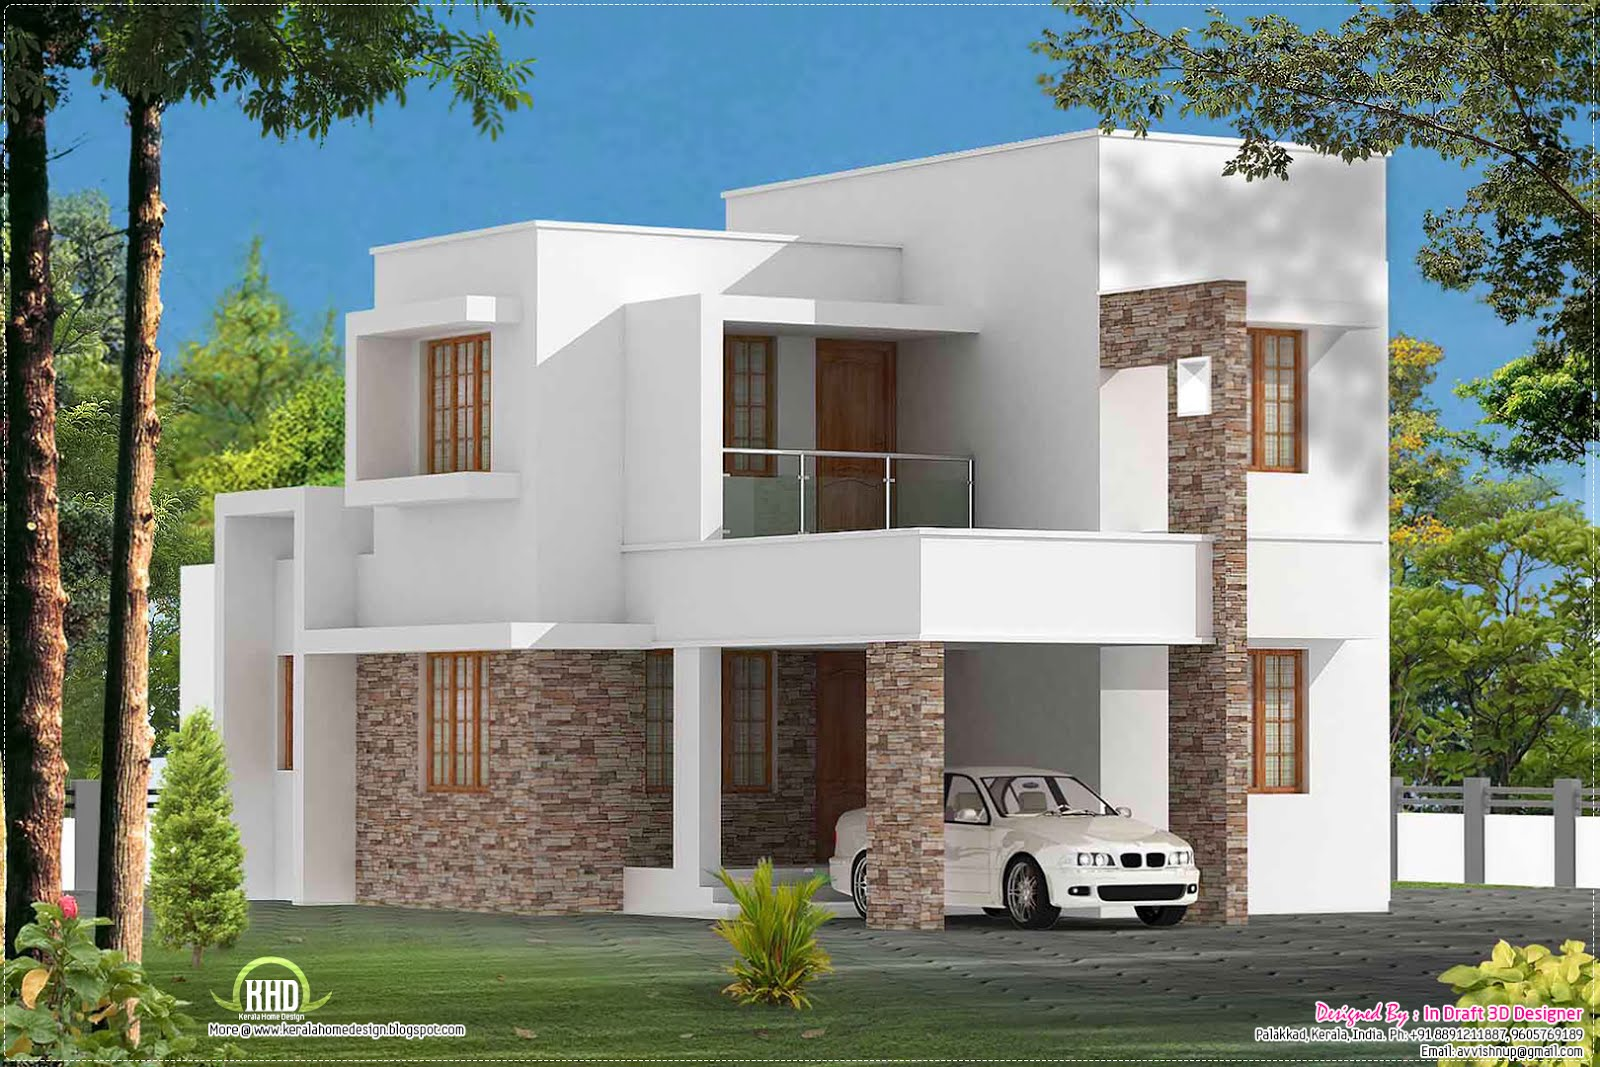 Simple 3 bed room contemporary villa kerala home design for Villa ideas designs